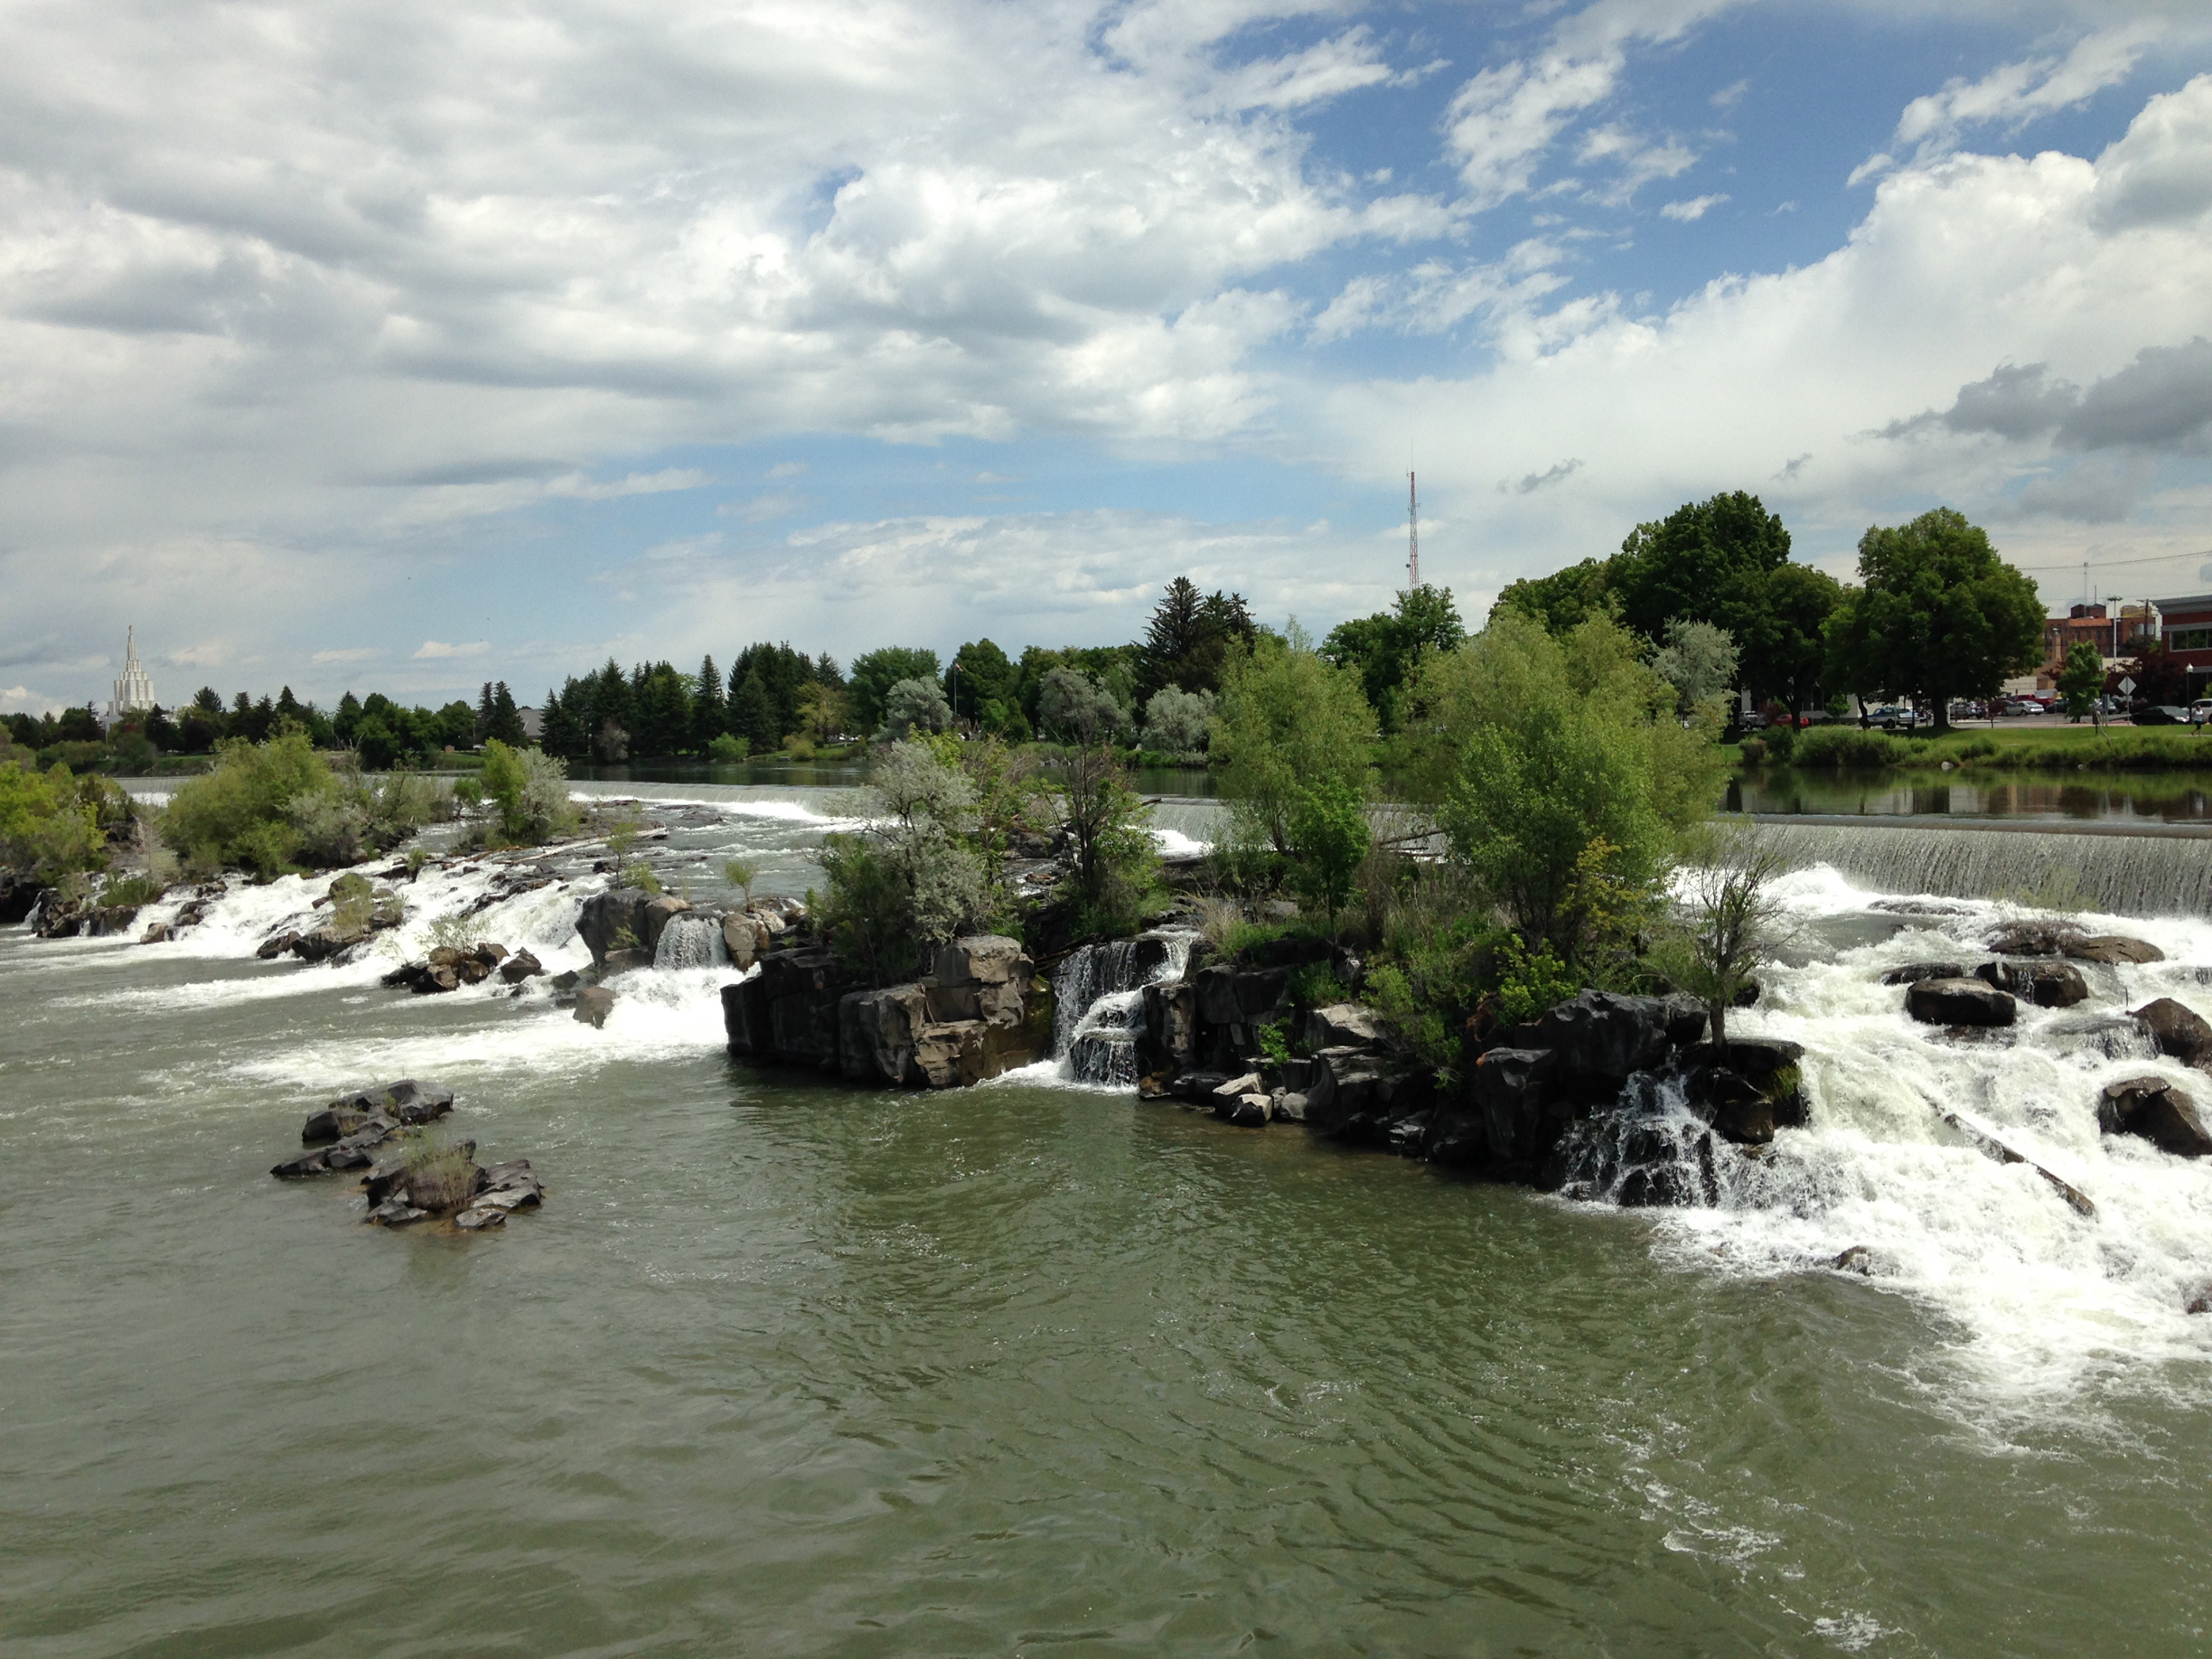 Idaho Falls Downtown Greenbelt Waterfalls - Idaho Falls Auto Repair